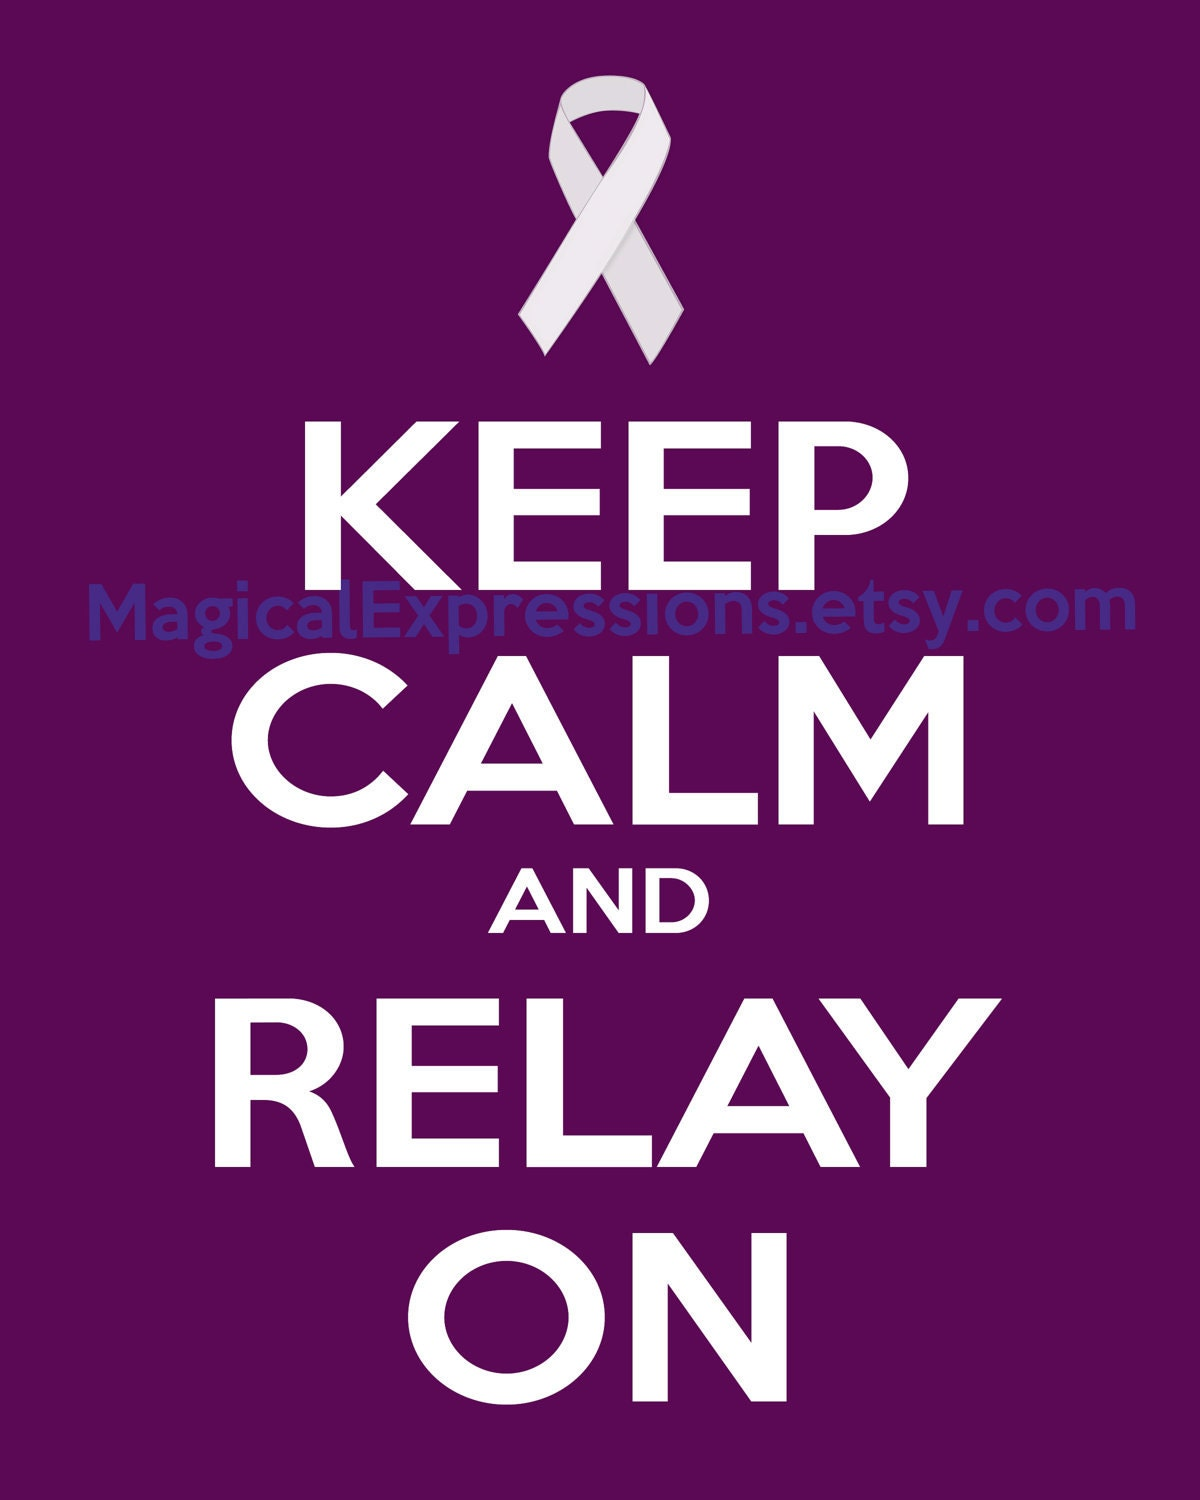 Relay For Life Quotes: Relay For Life New Year Quotes. QuotesGram